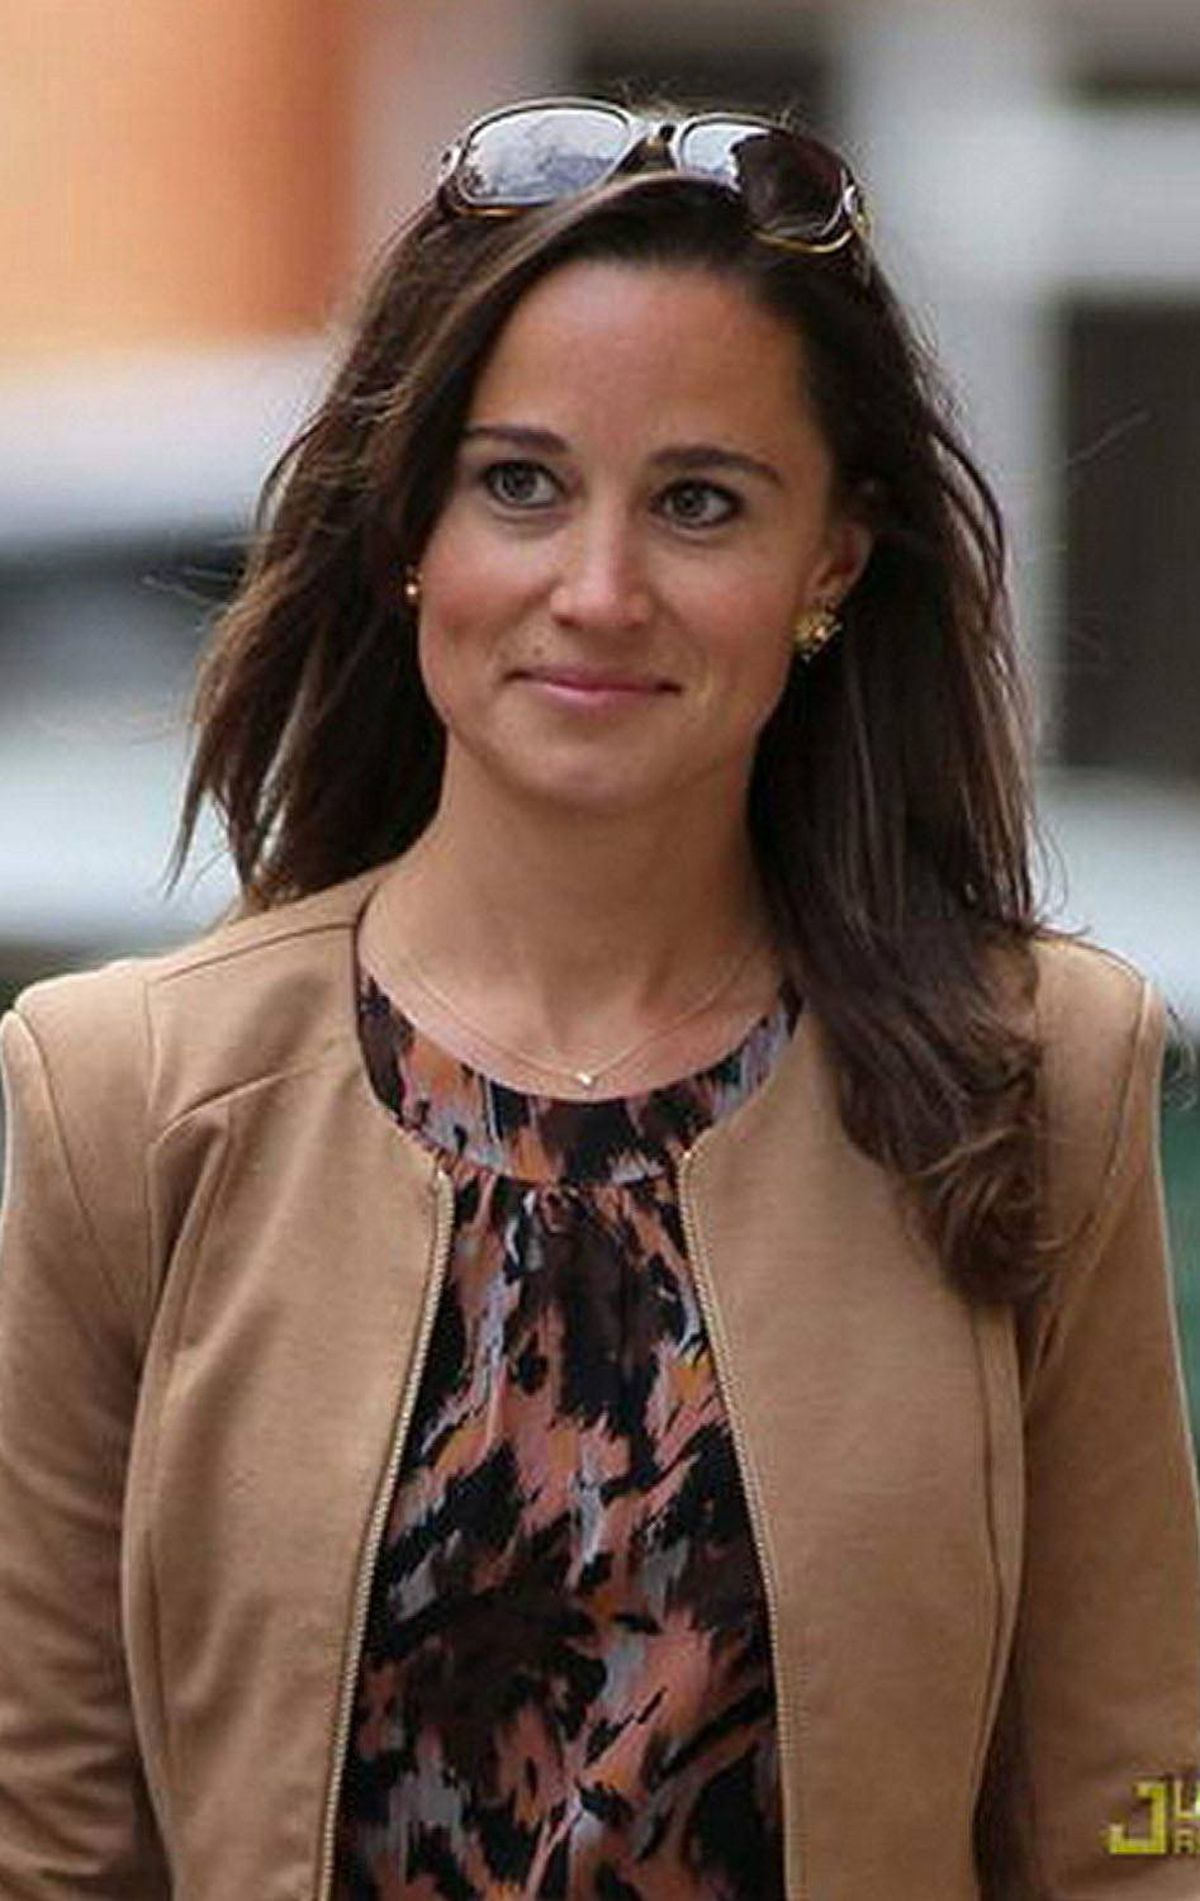 Overnight, Pippa - and, more specifically, her backside - became a paparazzi favourite as she went about her days in London.